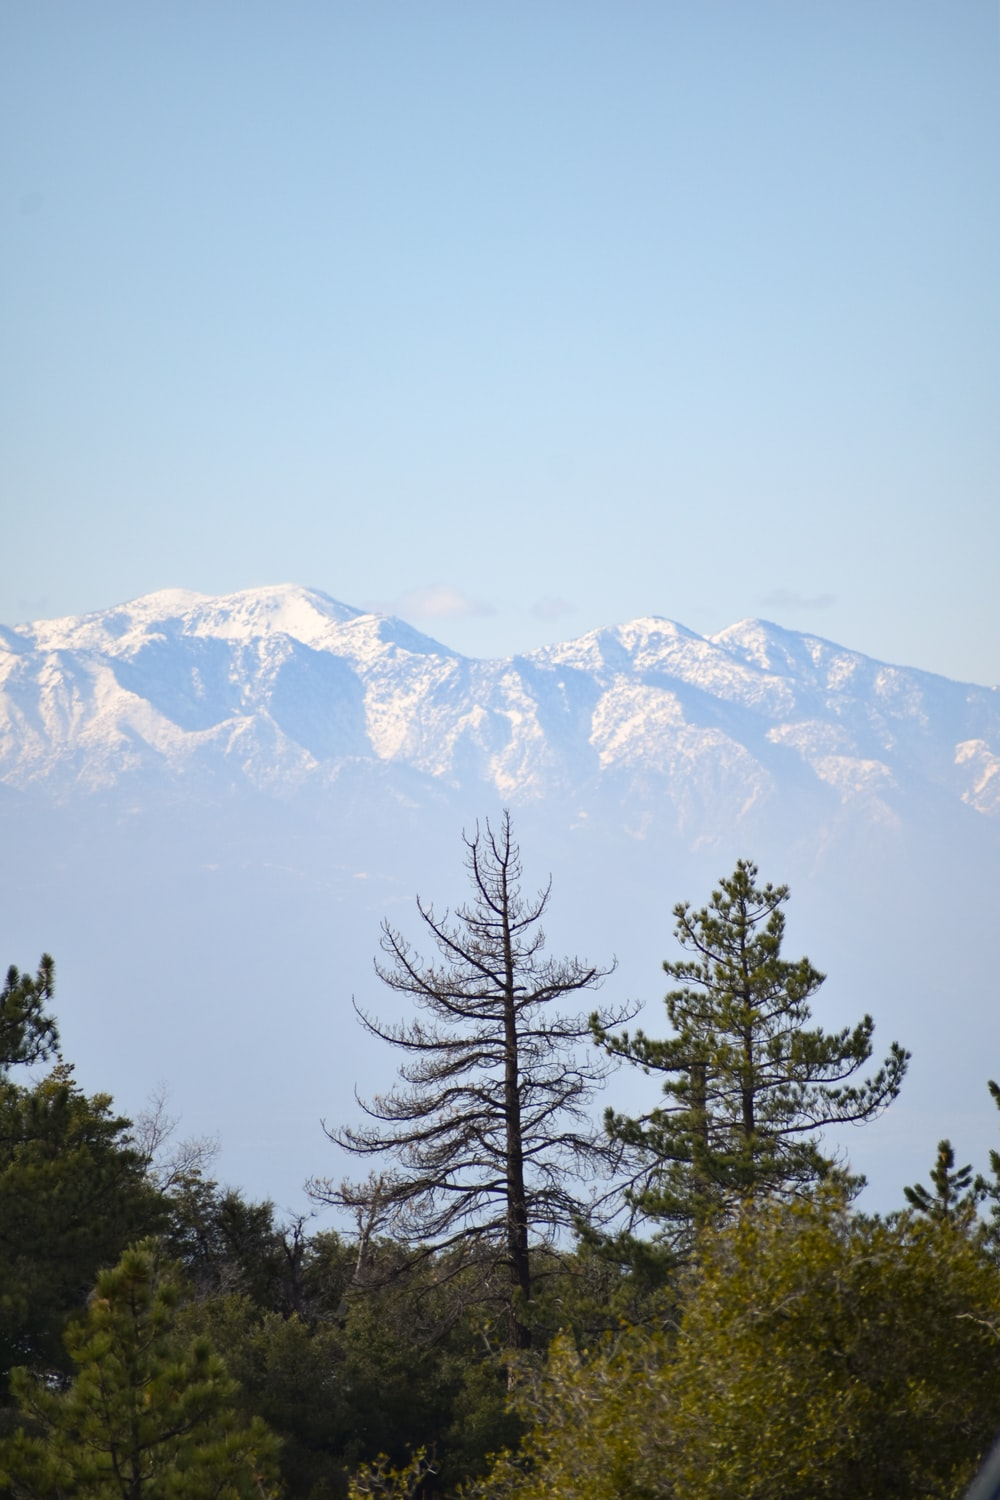 green pine tree near snow covered mountain during daytime